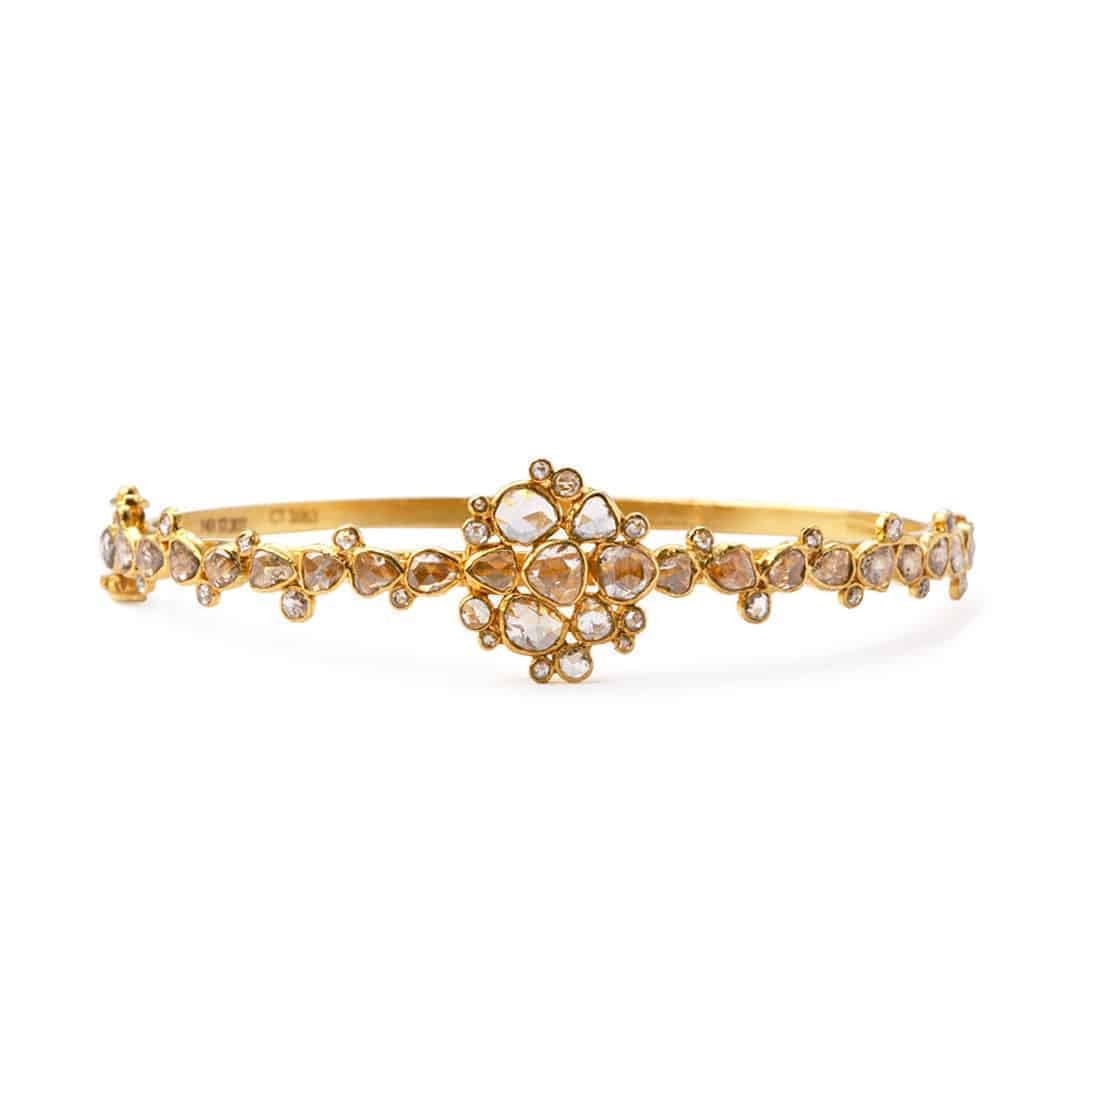 21383 - Diya 22ct Gold Uncut Polki Diamond Bangle